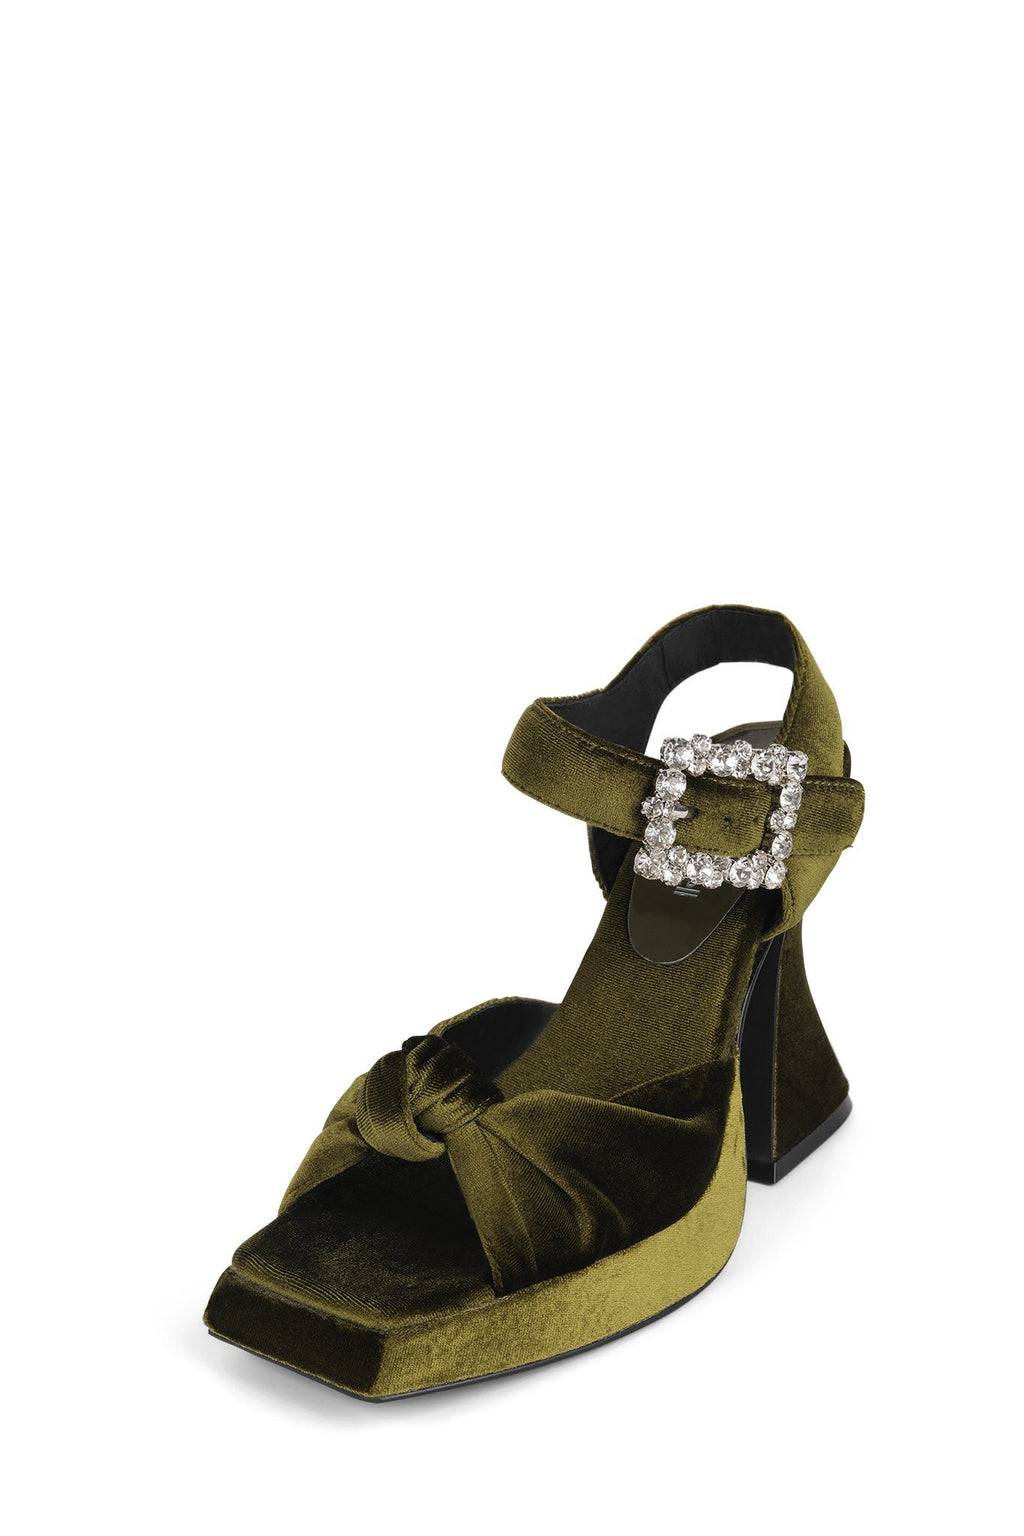 THE-CRAFT Platform Sandal DV